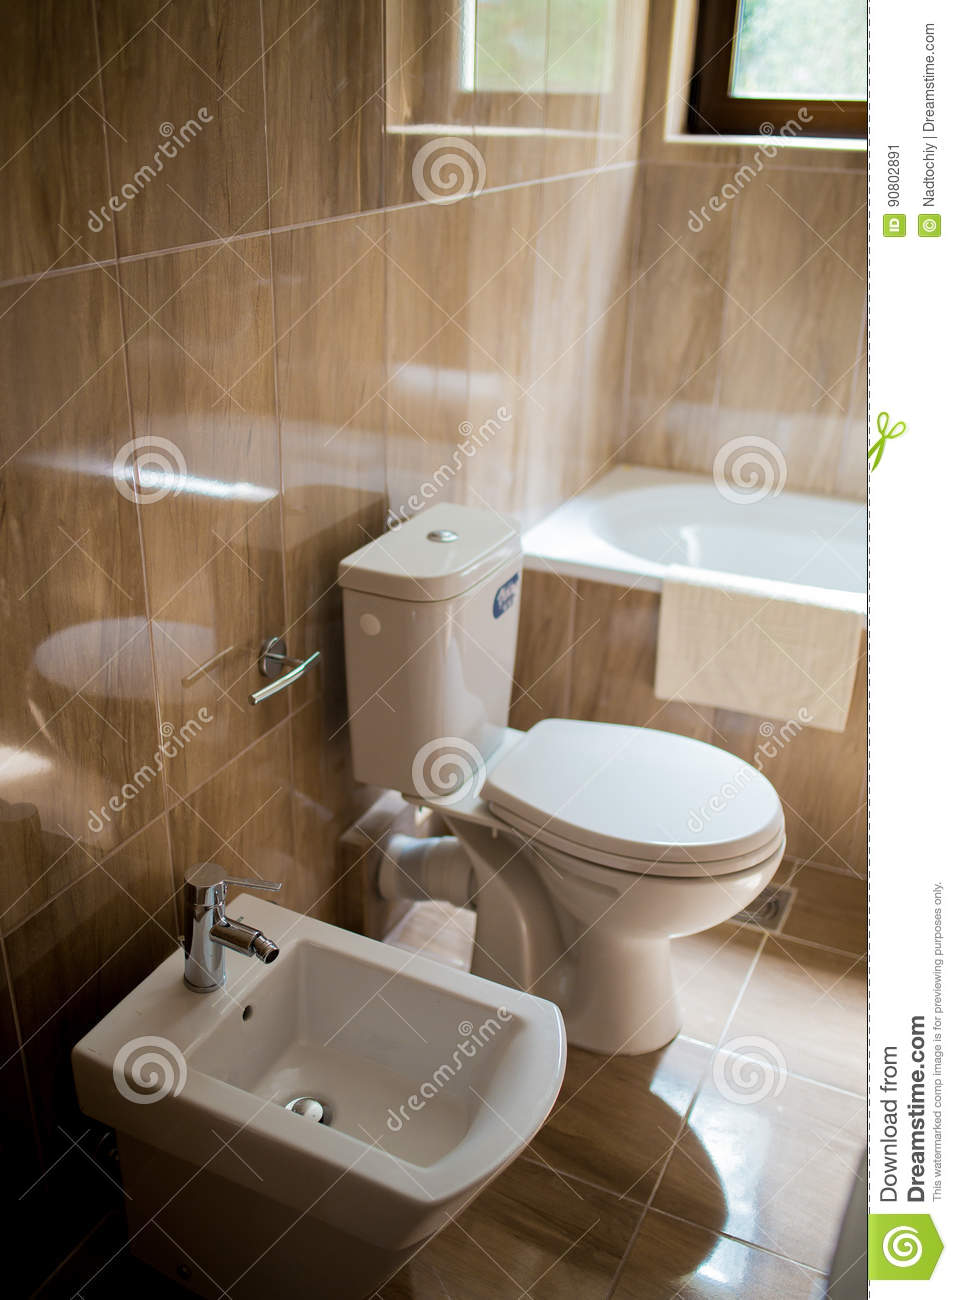 Phenomenal Badkamersbinnenland Wasbak Bidet Toilet Grote Spiegel Gmtry Best Dining Table And Chair Ideas Images Gmtryco